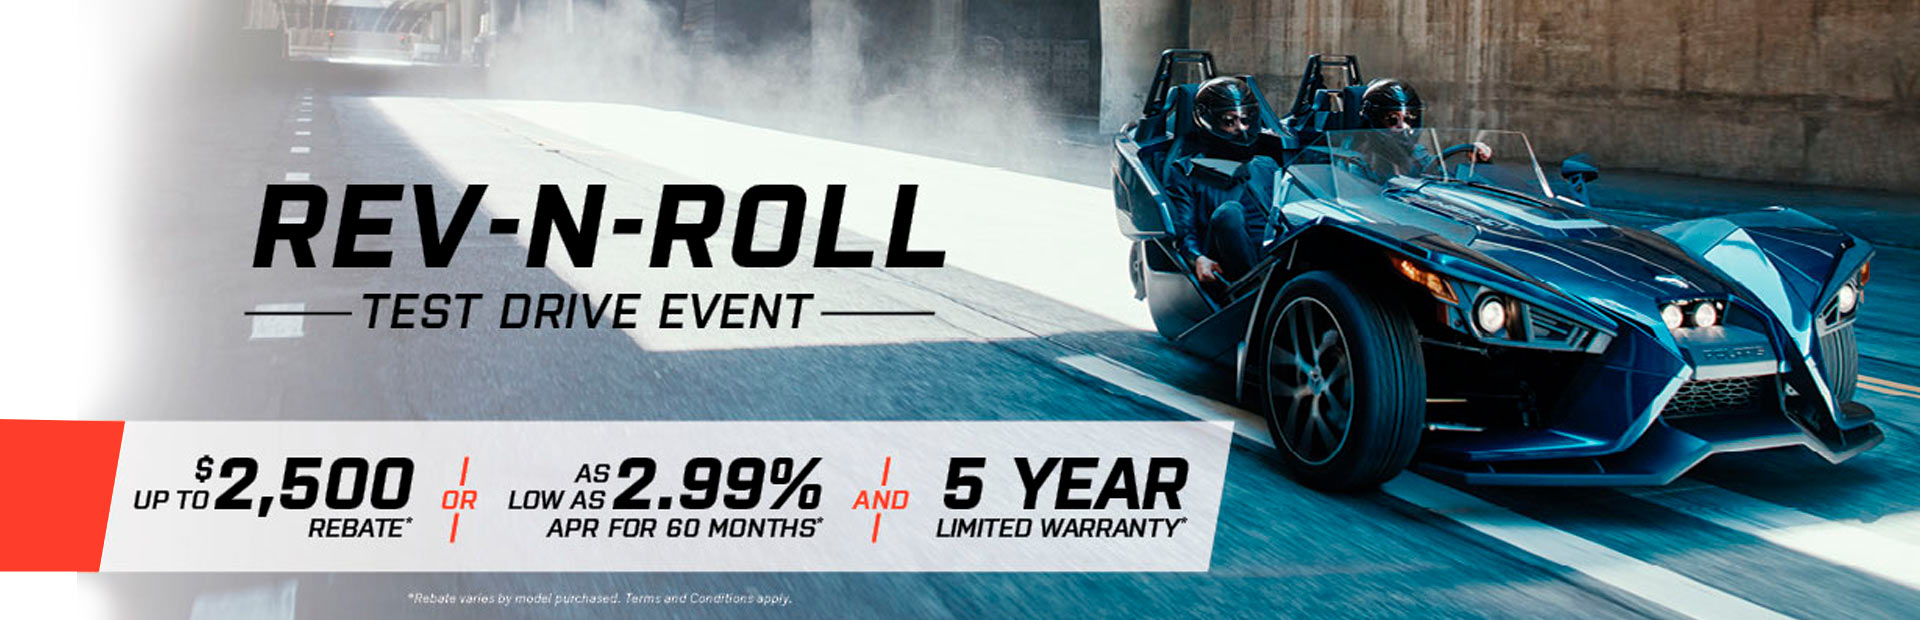 Rev-N-Roll Test Drive Event